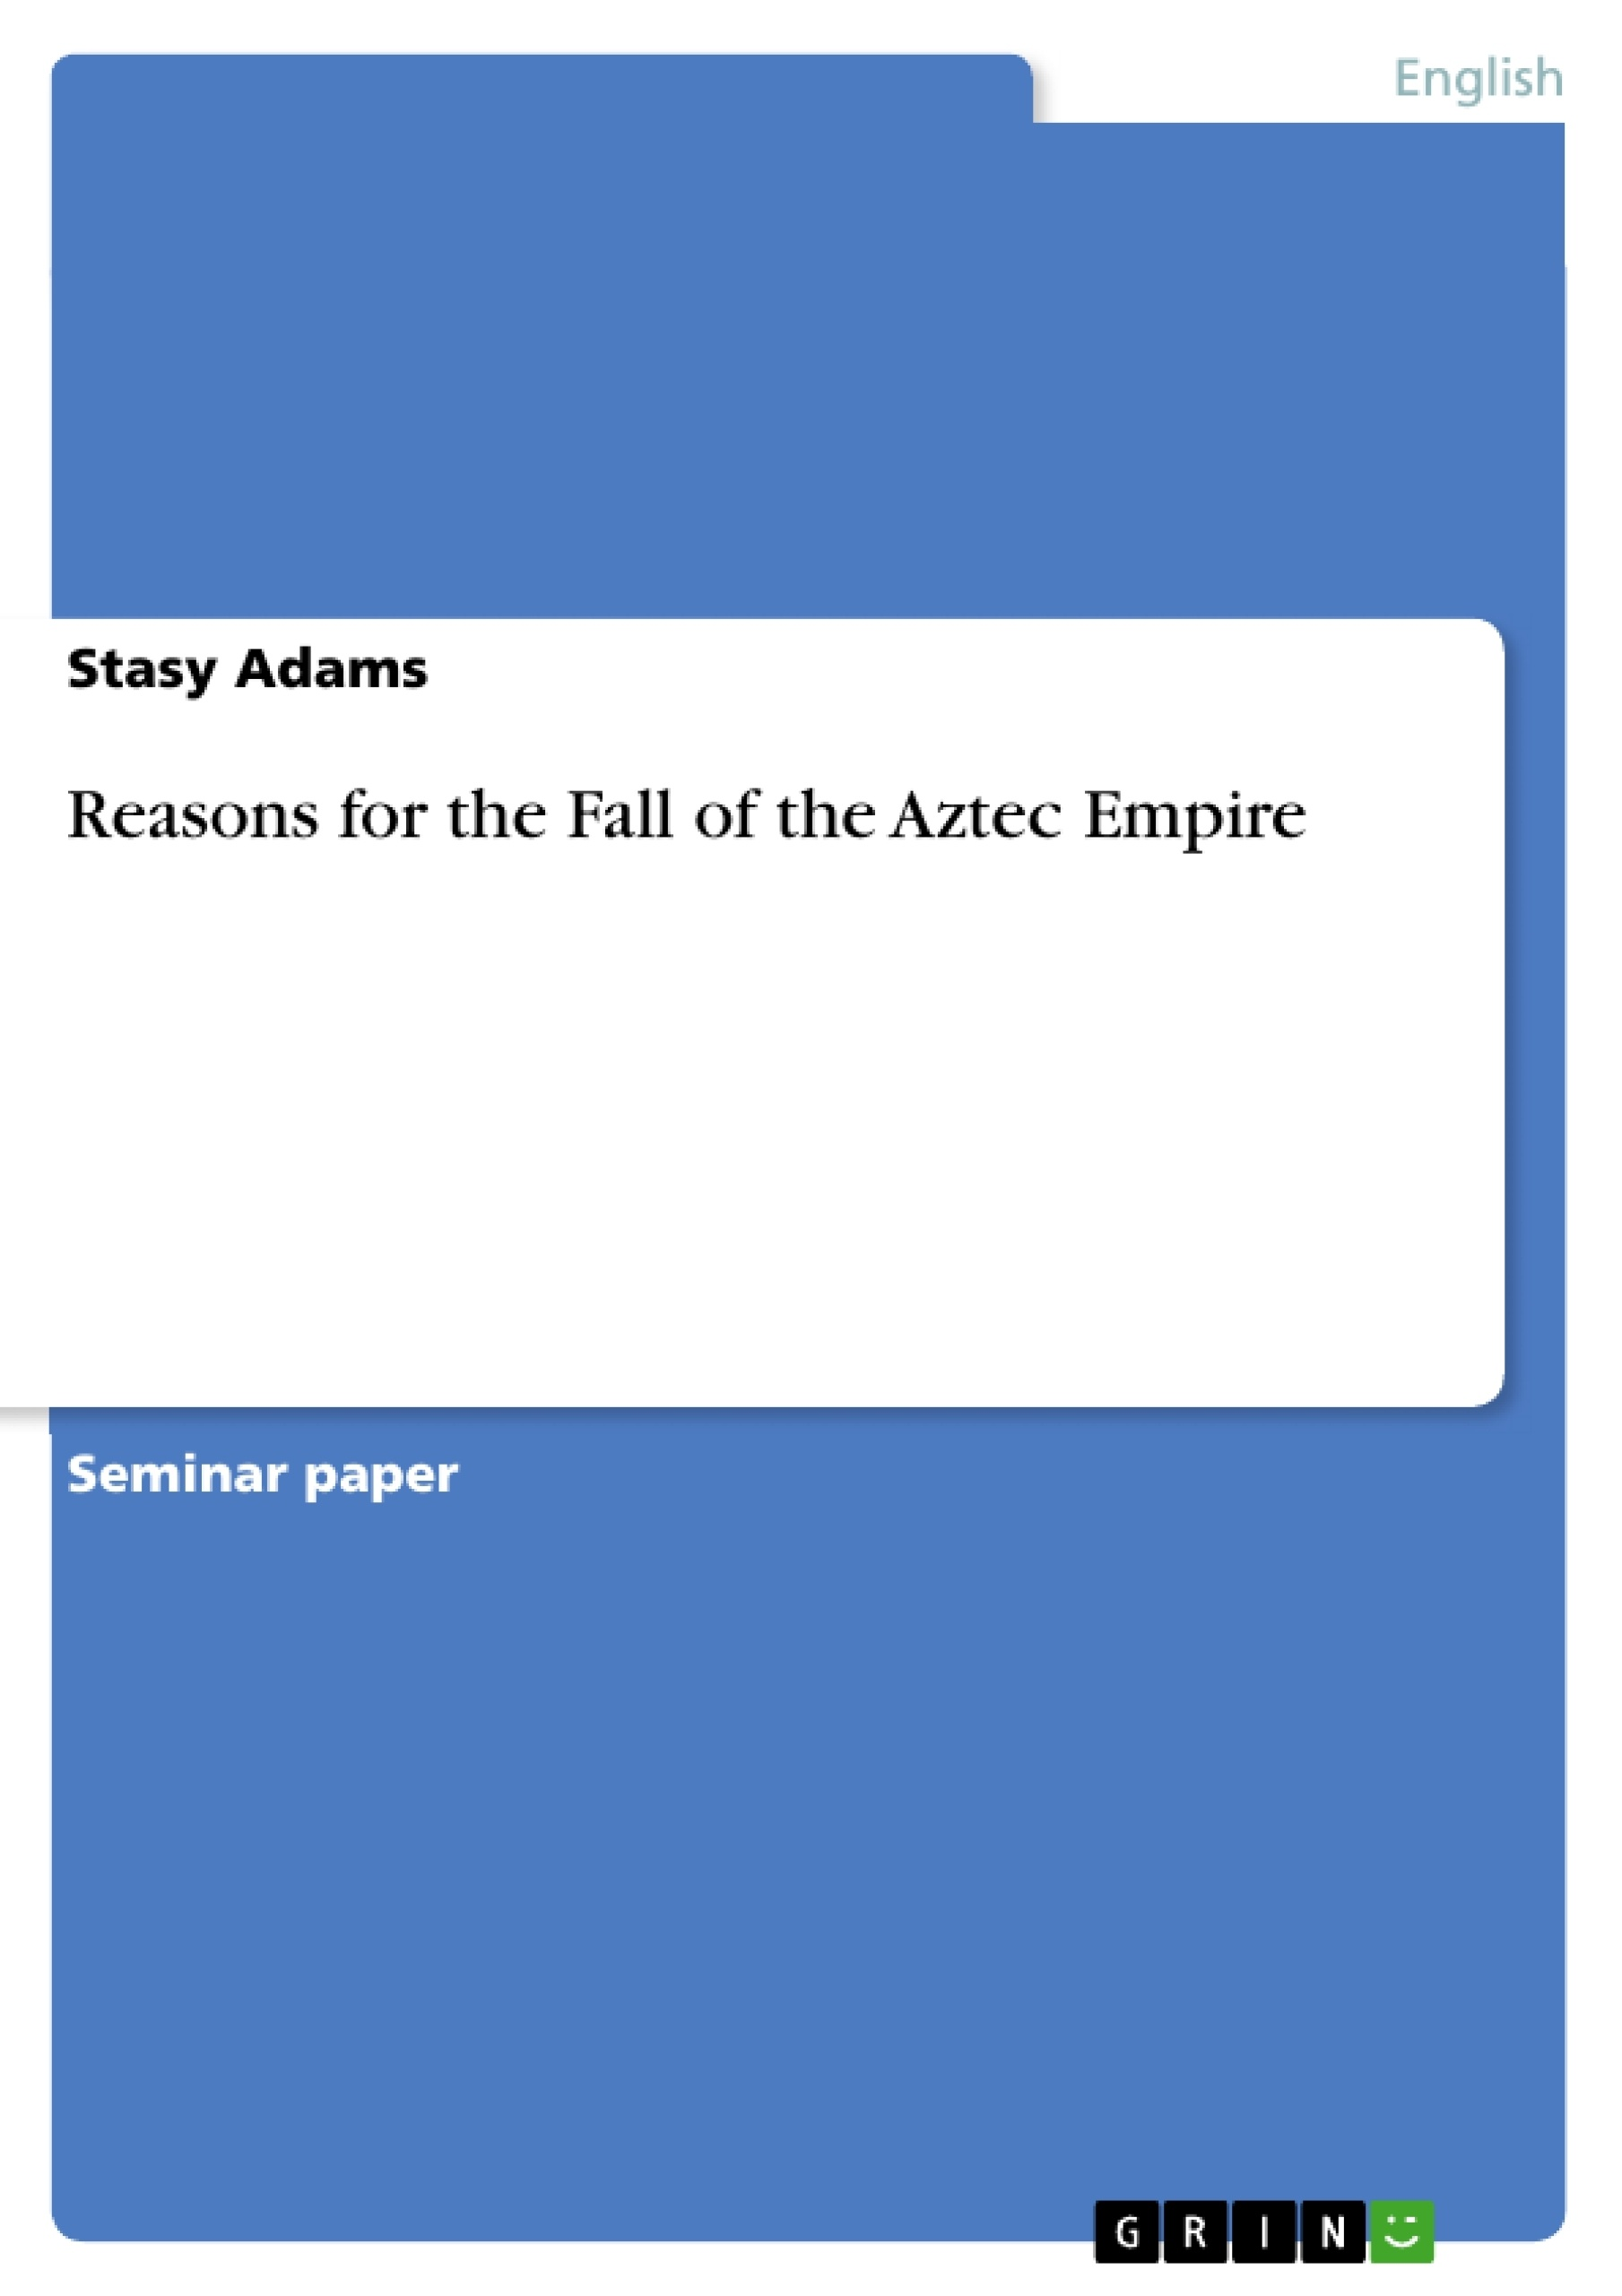 reasons for the fall of the aztec empire publish your master s reasons for the fall of the aztec empire publish your master s thesis bachelor s thesis essay or term paper